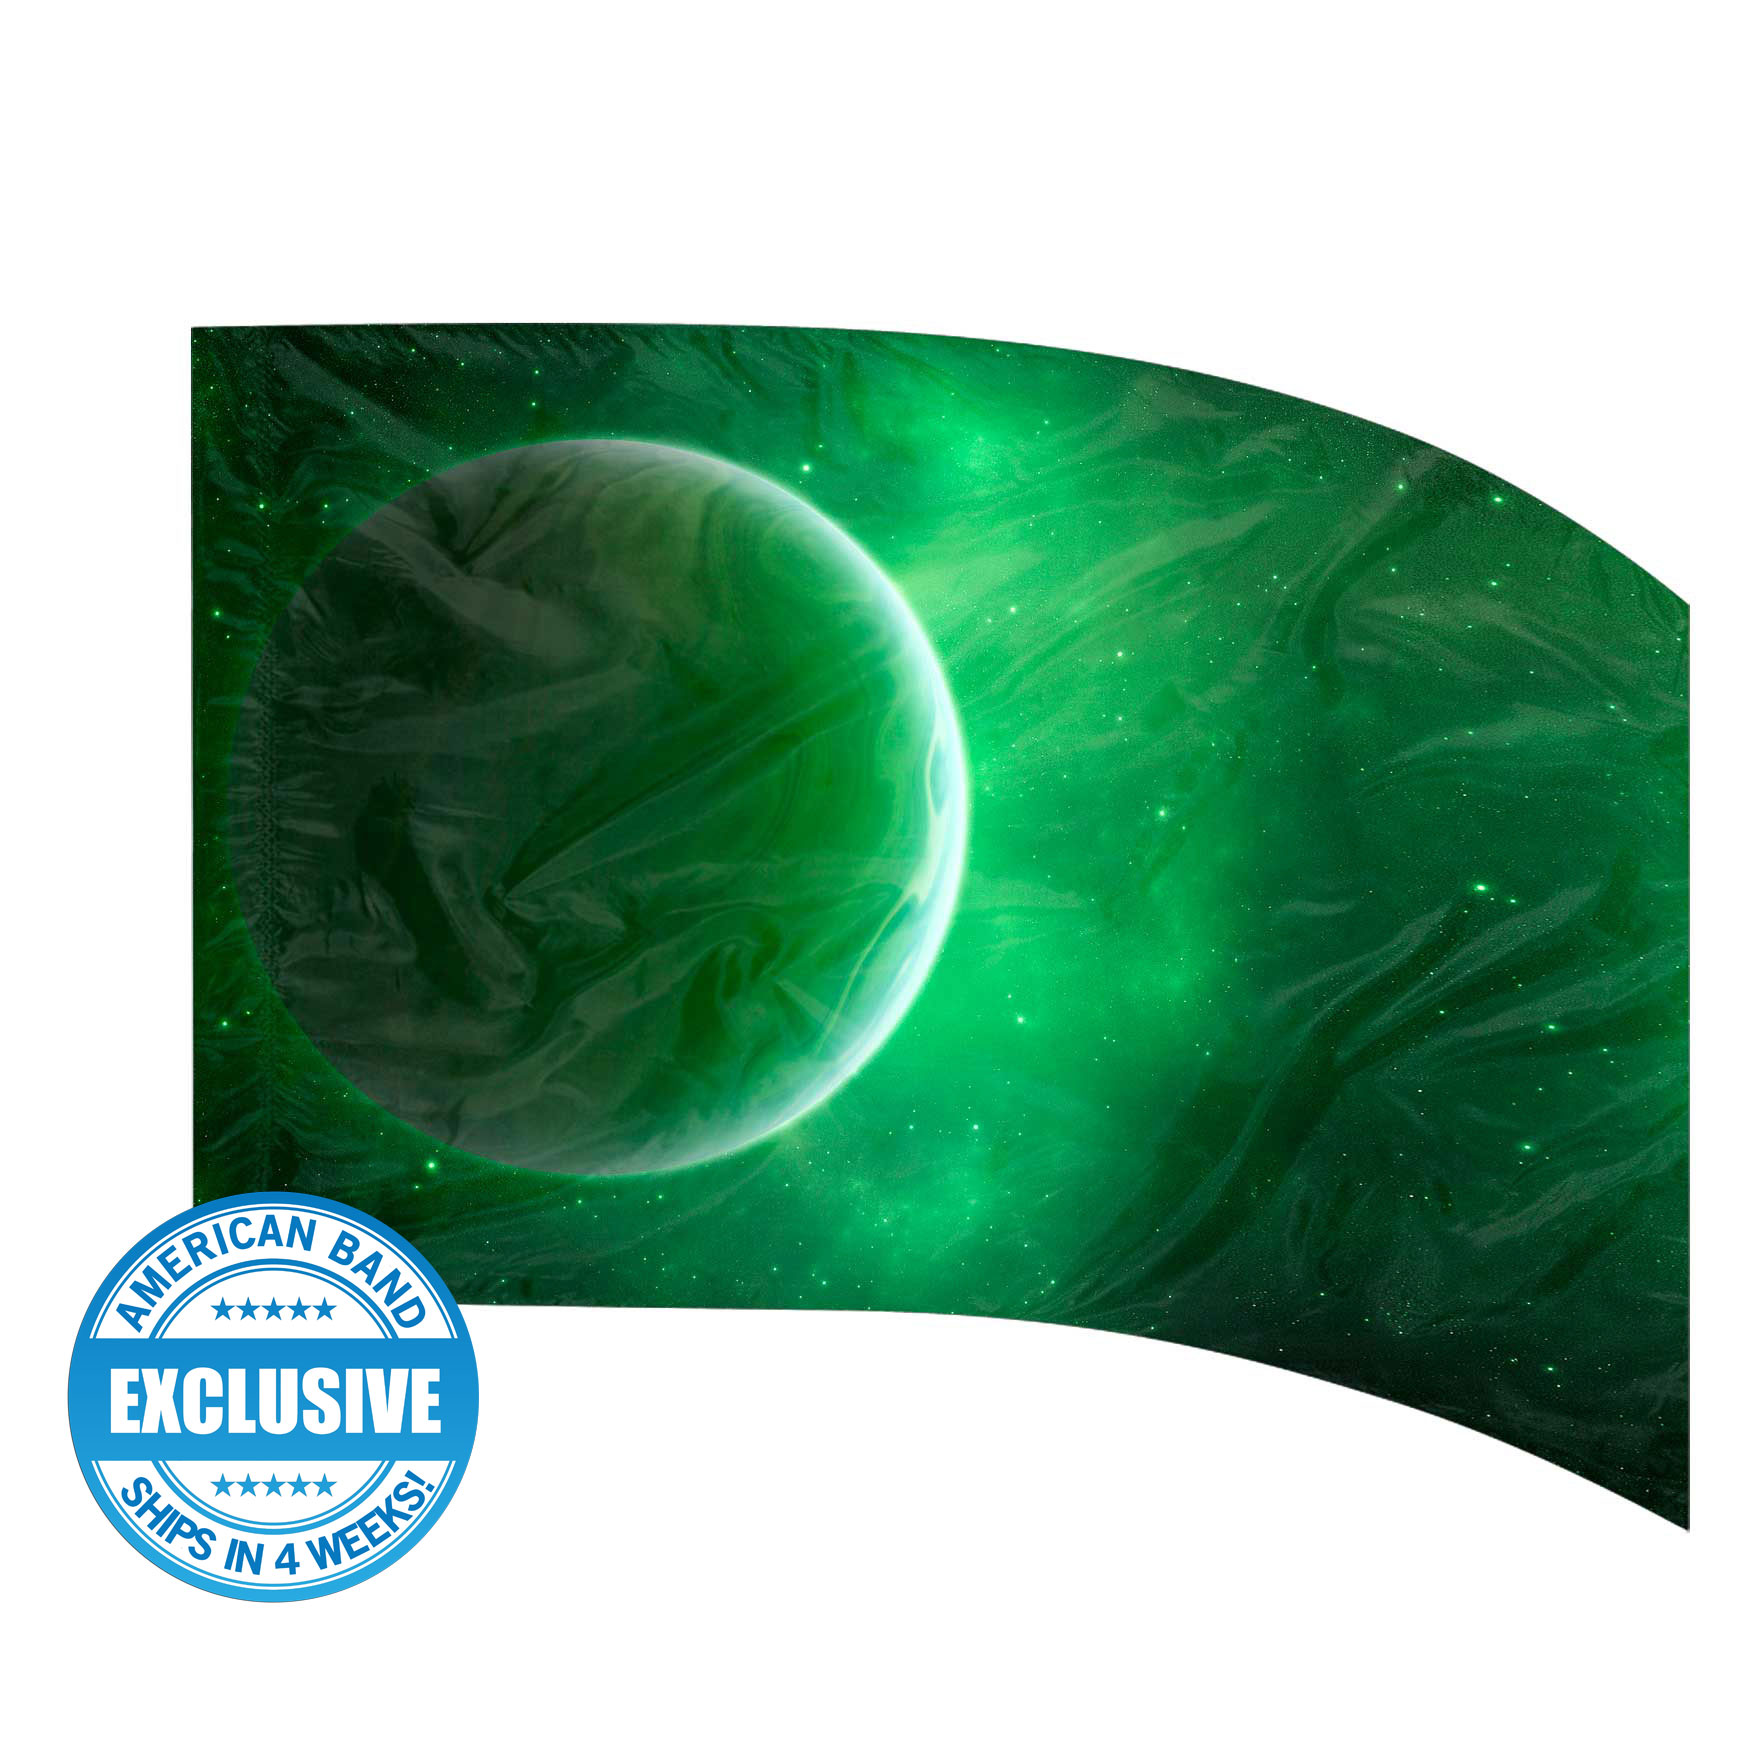 Made-to-Order Digital Cosmos Flags: Style 2